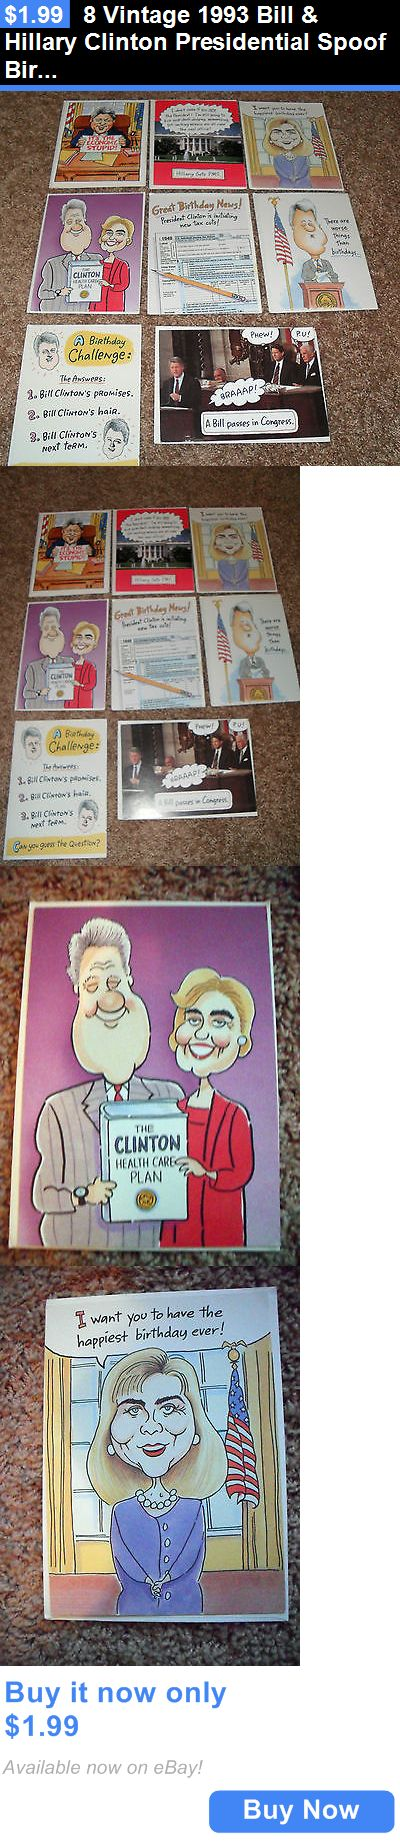 Bill Clinton: 8 Vintage 1993 Bill And Hillary Clinton Presidential Spoof Birthday Cards-Unused BUY IT NOW ONLY: $1.99